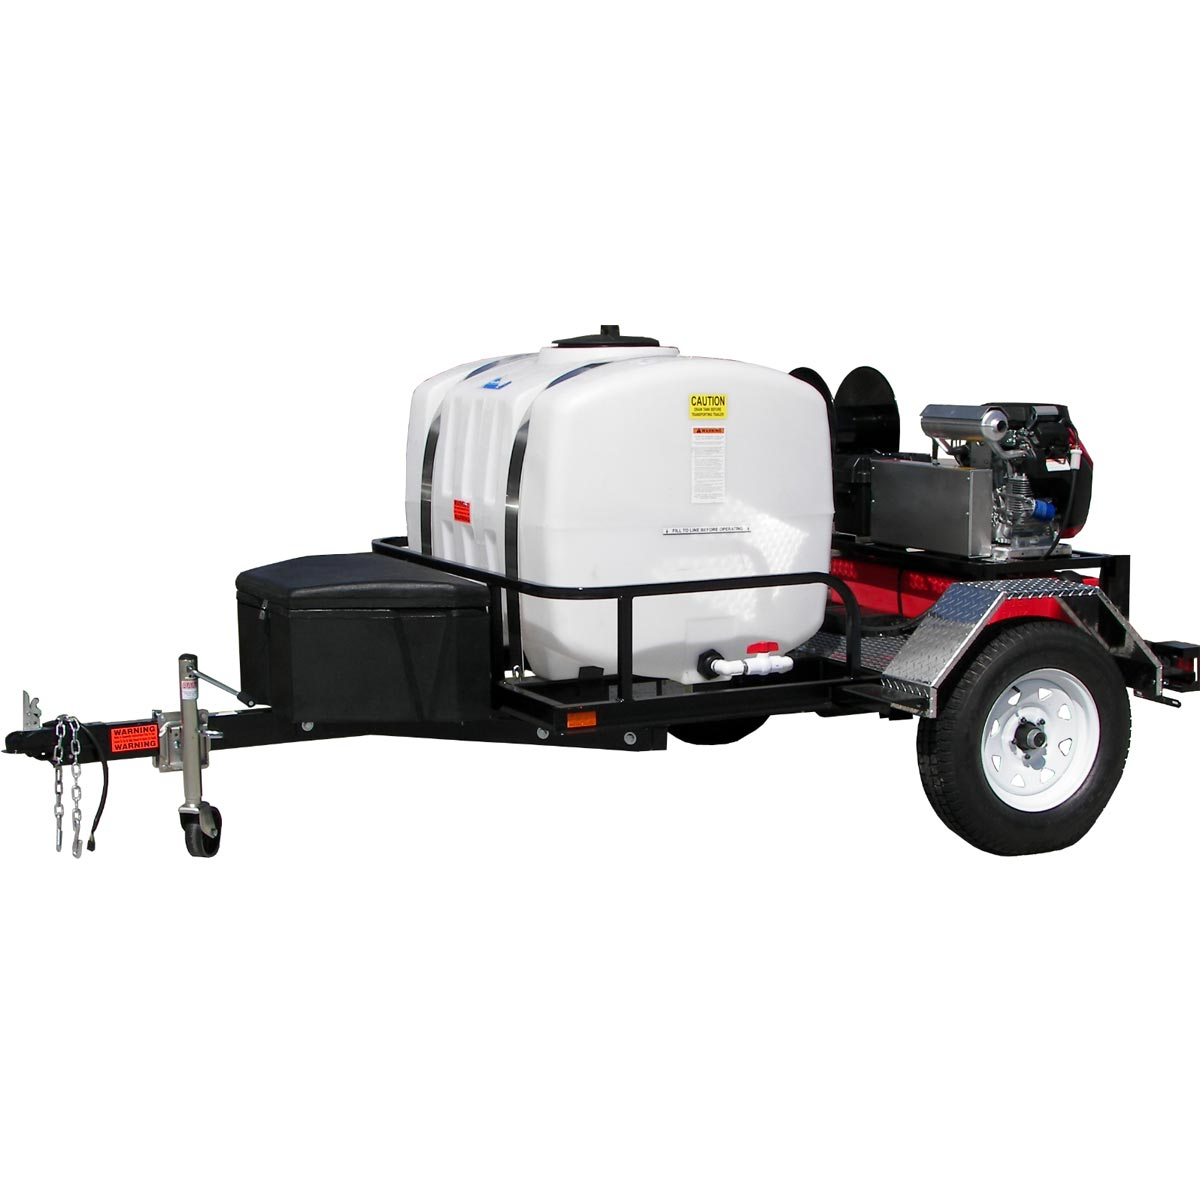 Clean Storm 20180712 Pressure Washer Tow-Pro Trailer Outfit 4000 PSI @ 5 GPM AR Pump HOT FREE Shipping 18 hp Briggs Vanguard